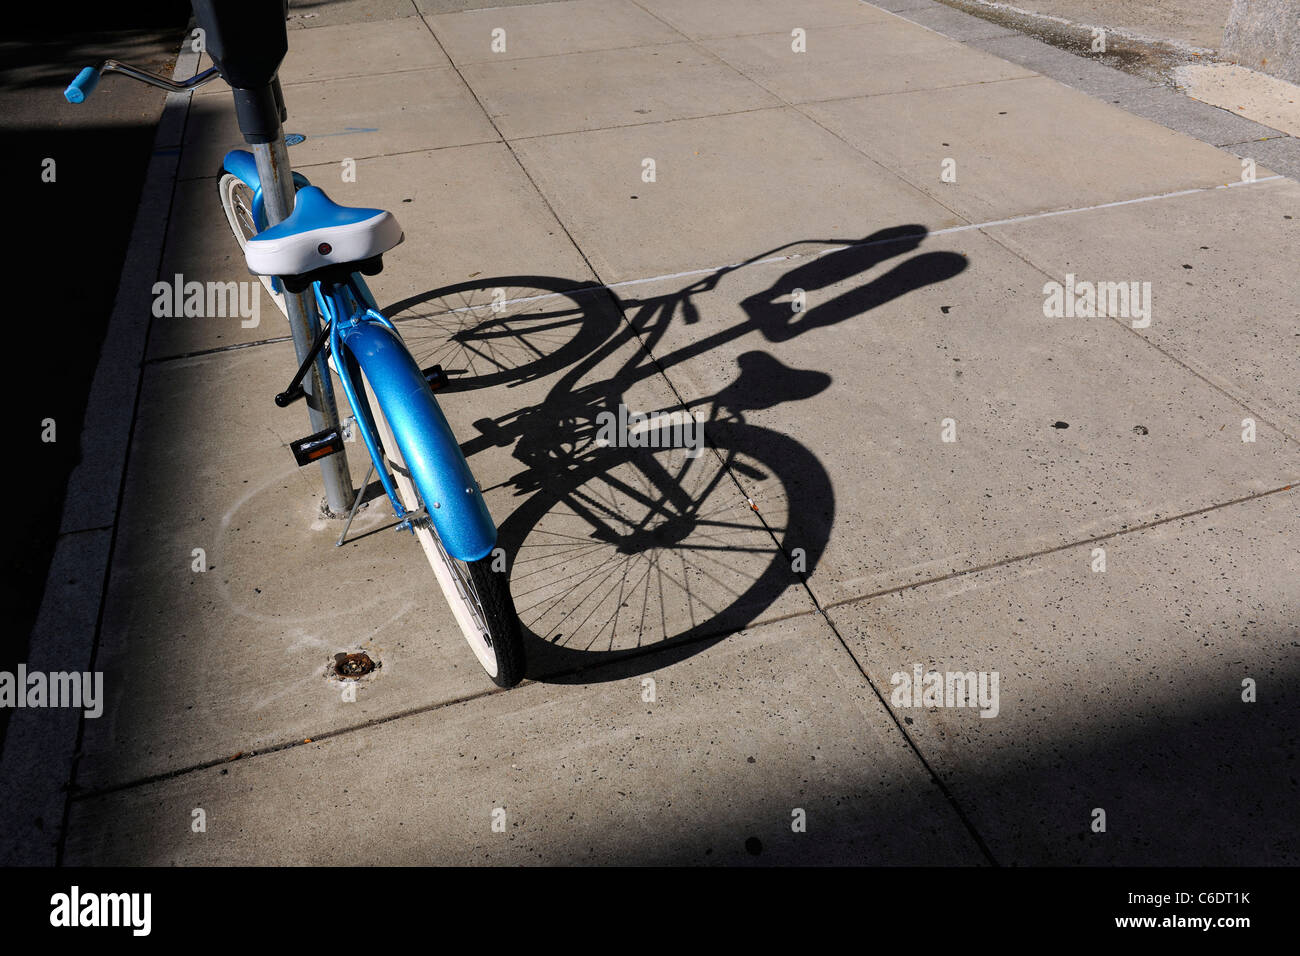 funny bike parking stock photos funny bike parking stock images